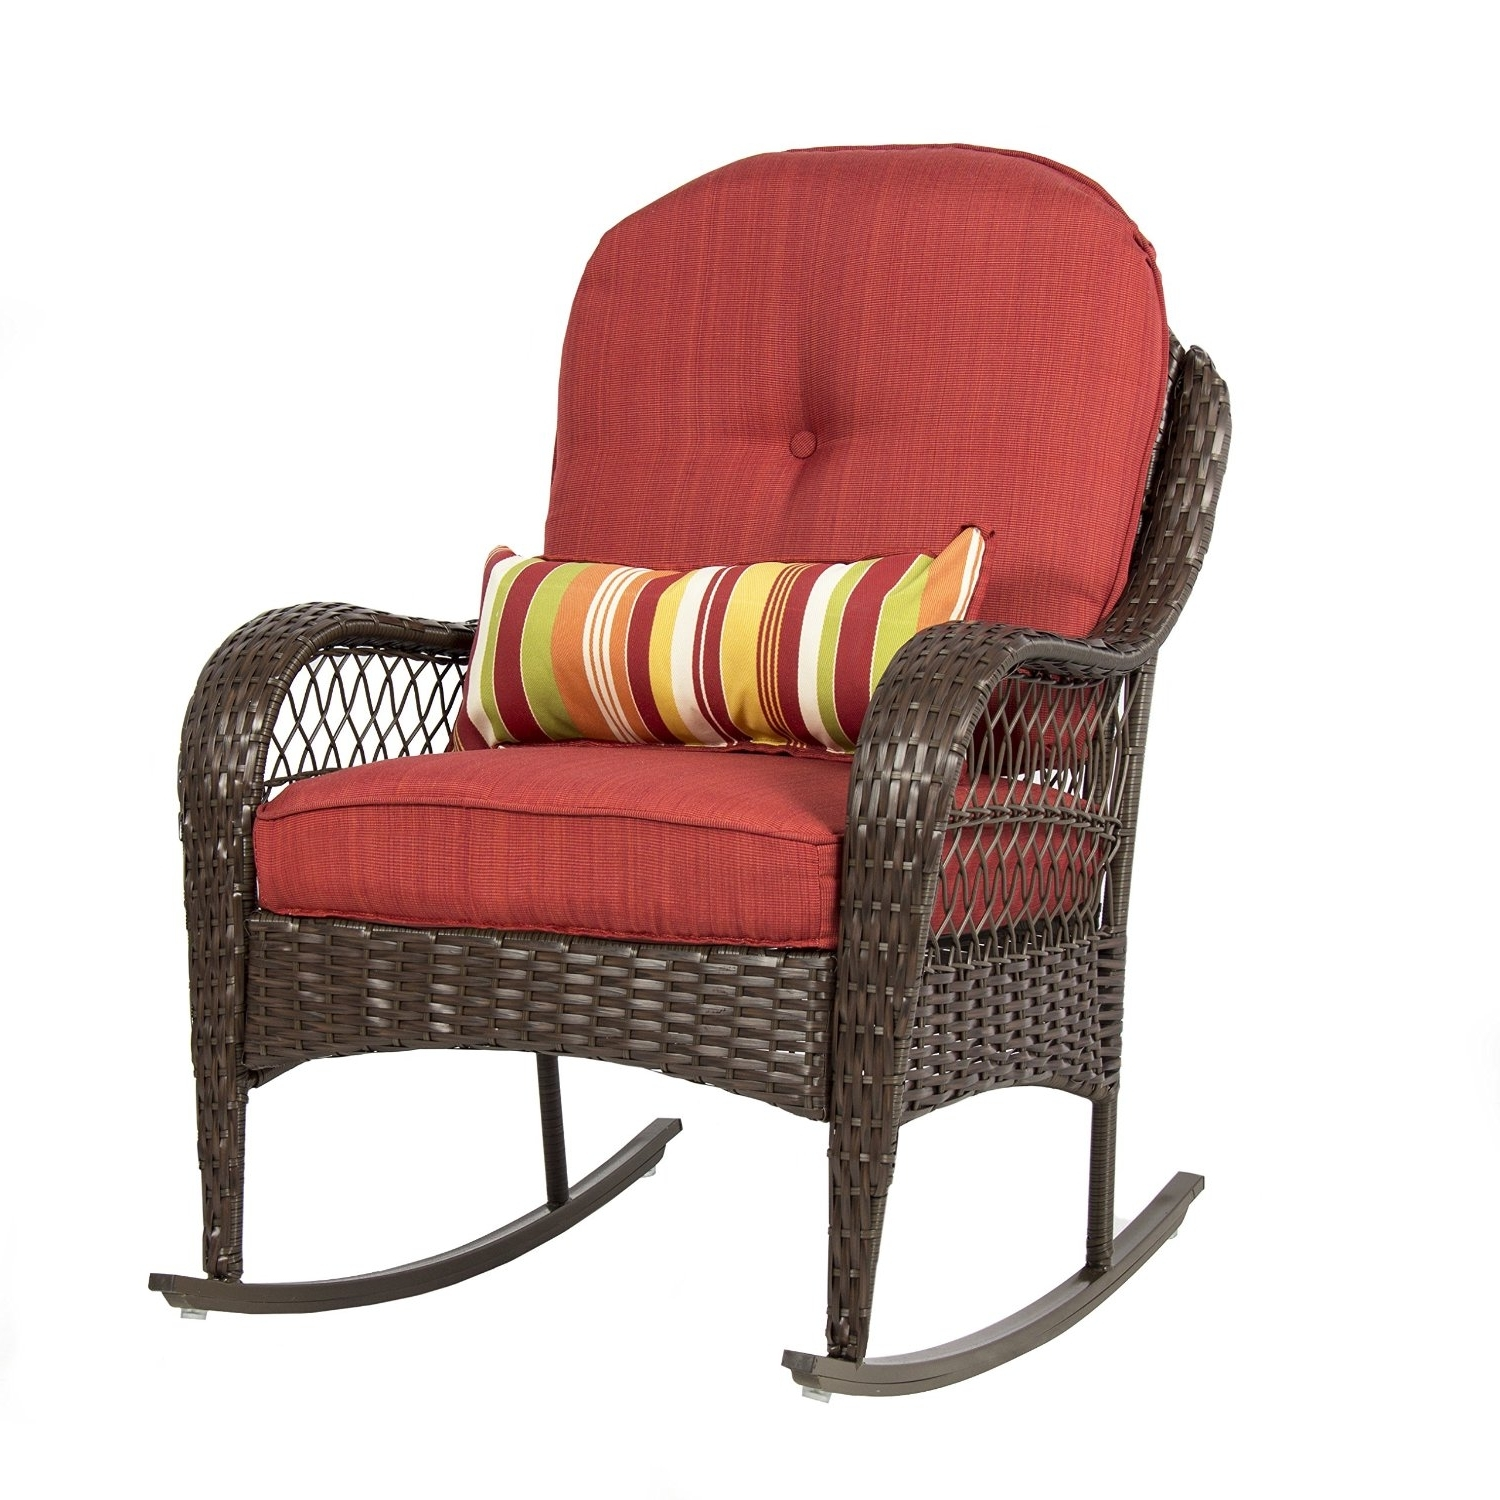 Kevinjohnsonformayor – Page 9 – Rocking Chair Reborn Pertaining To Fashionable Padded Patio Rocking Chairs (View 4 of 15)